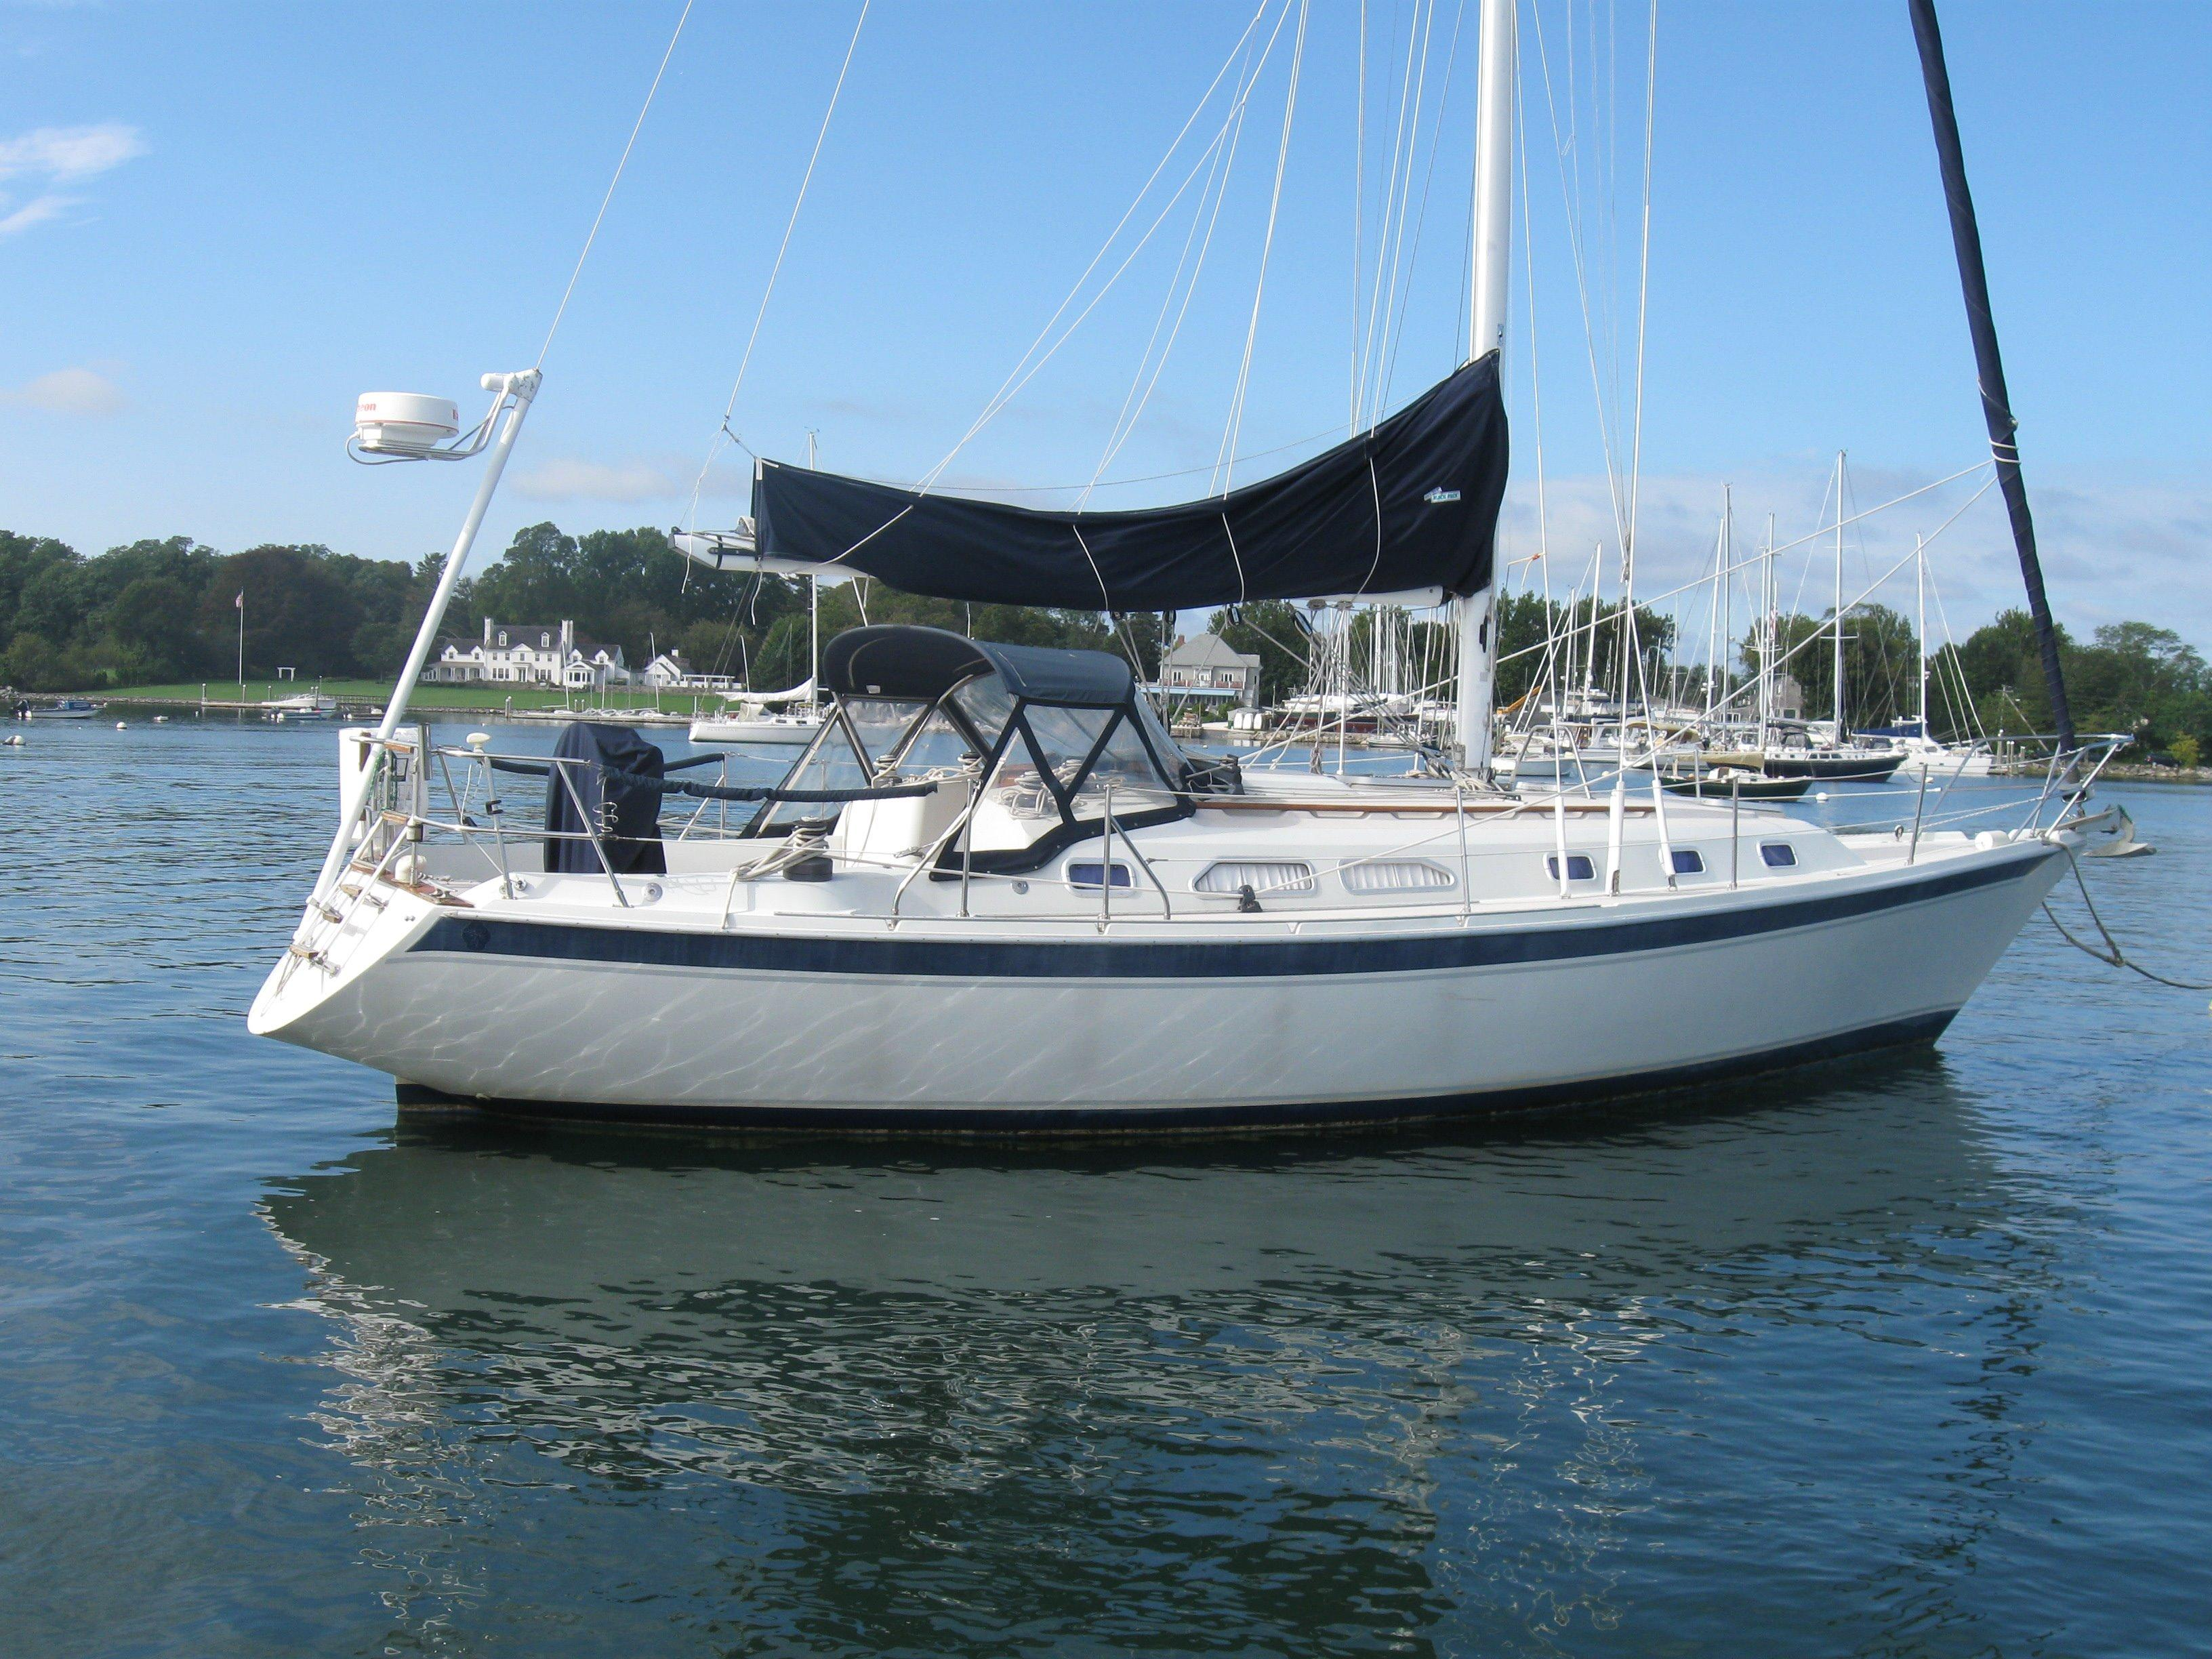 ERICSON 38-200 sailboat specifications and details on sailboatdata.com